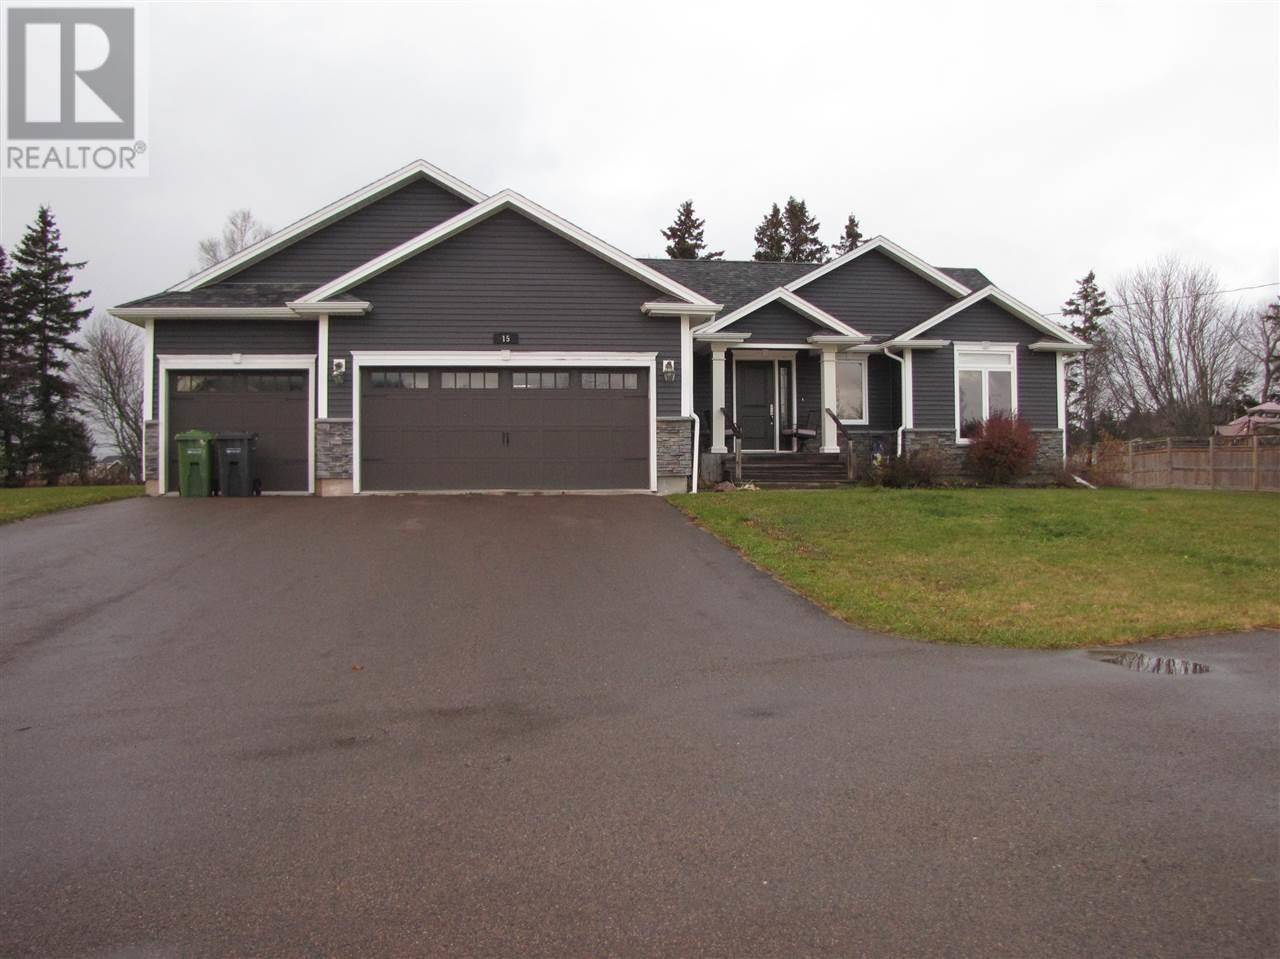 House for sale at 15 Parricus Mead Dr West Royalty Prince Edward Island - MLS: 202002336